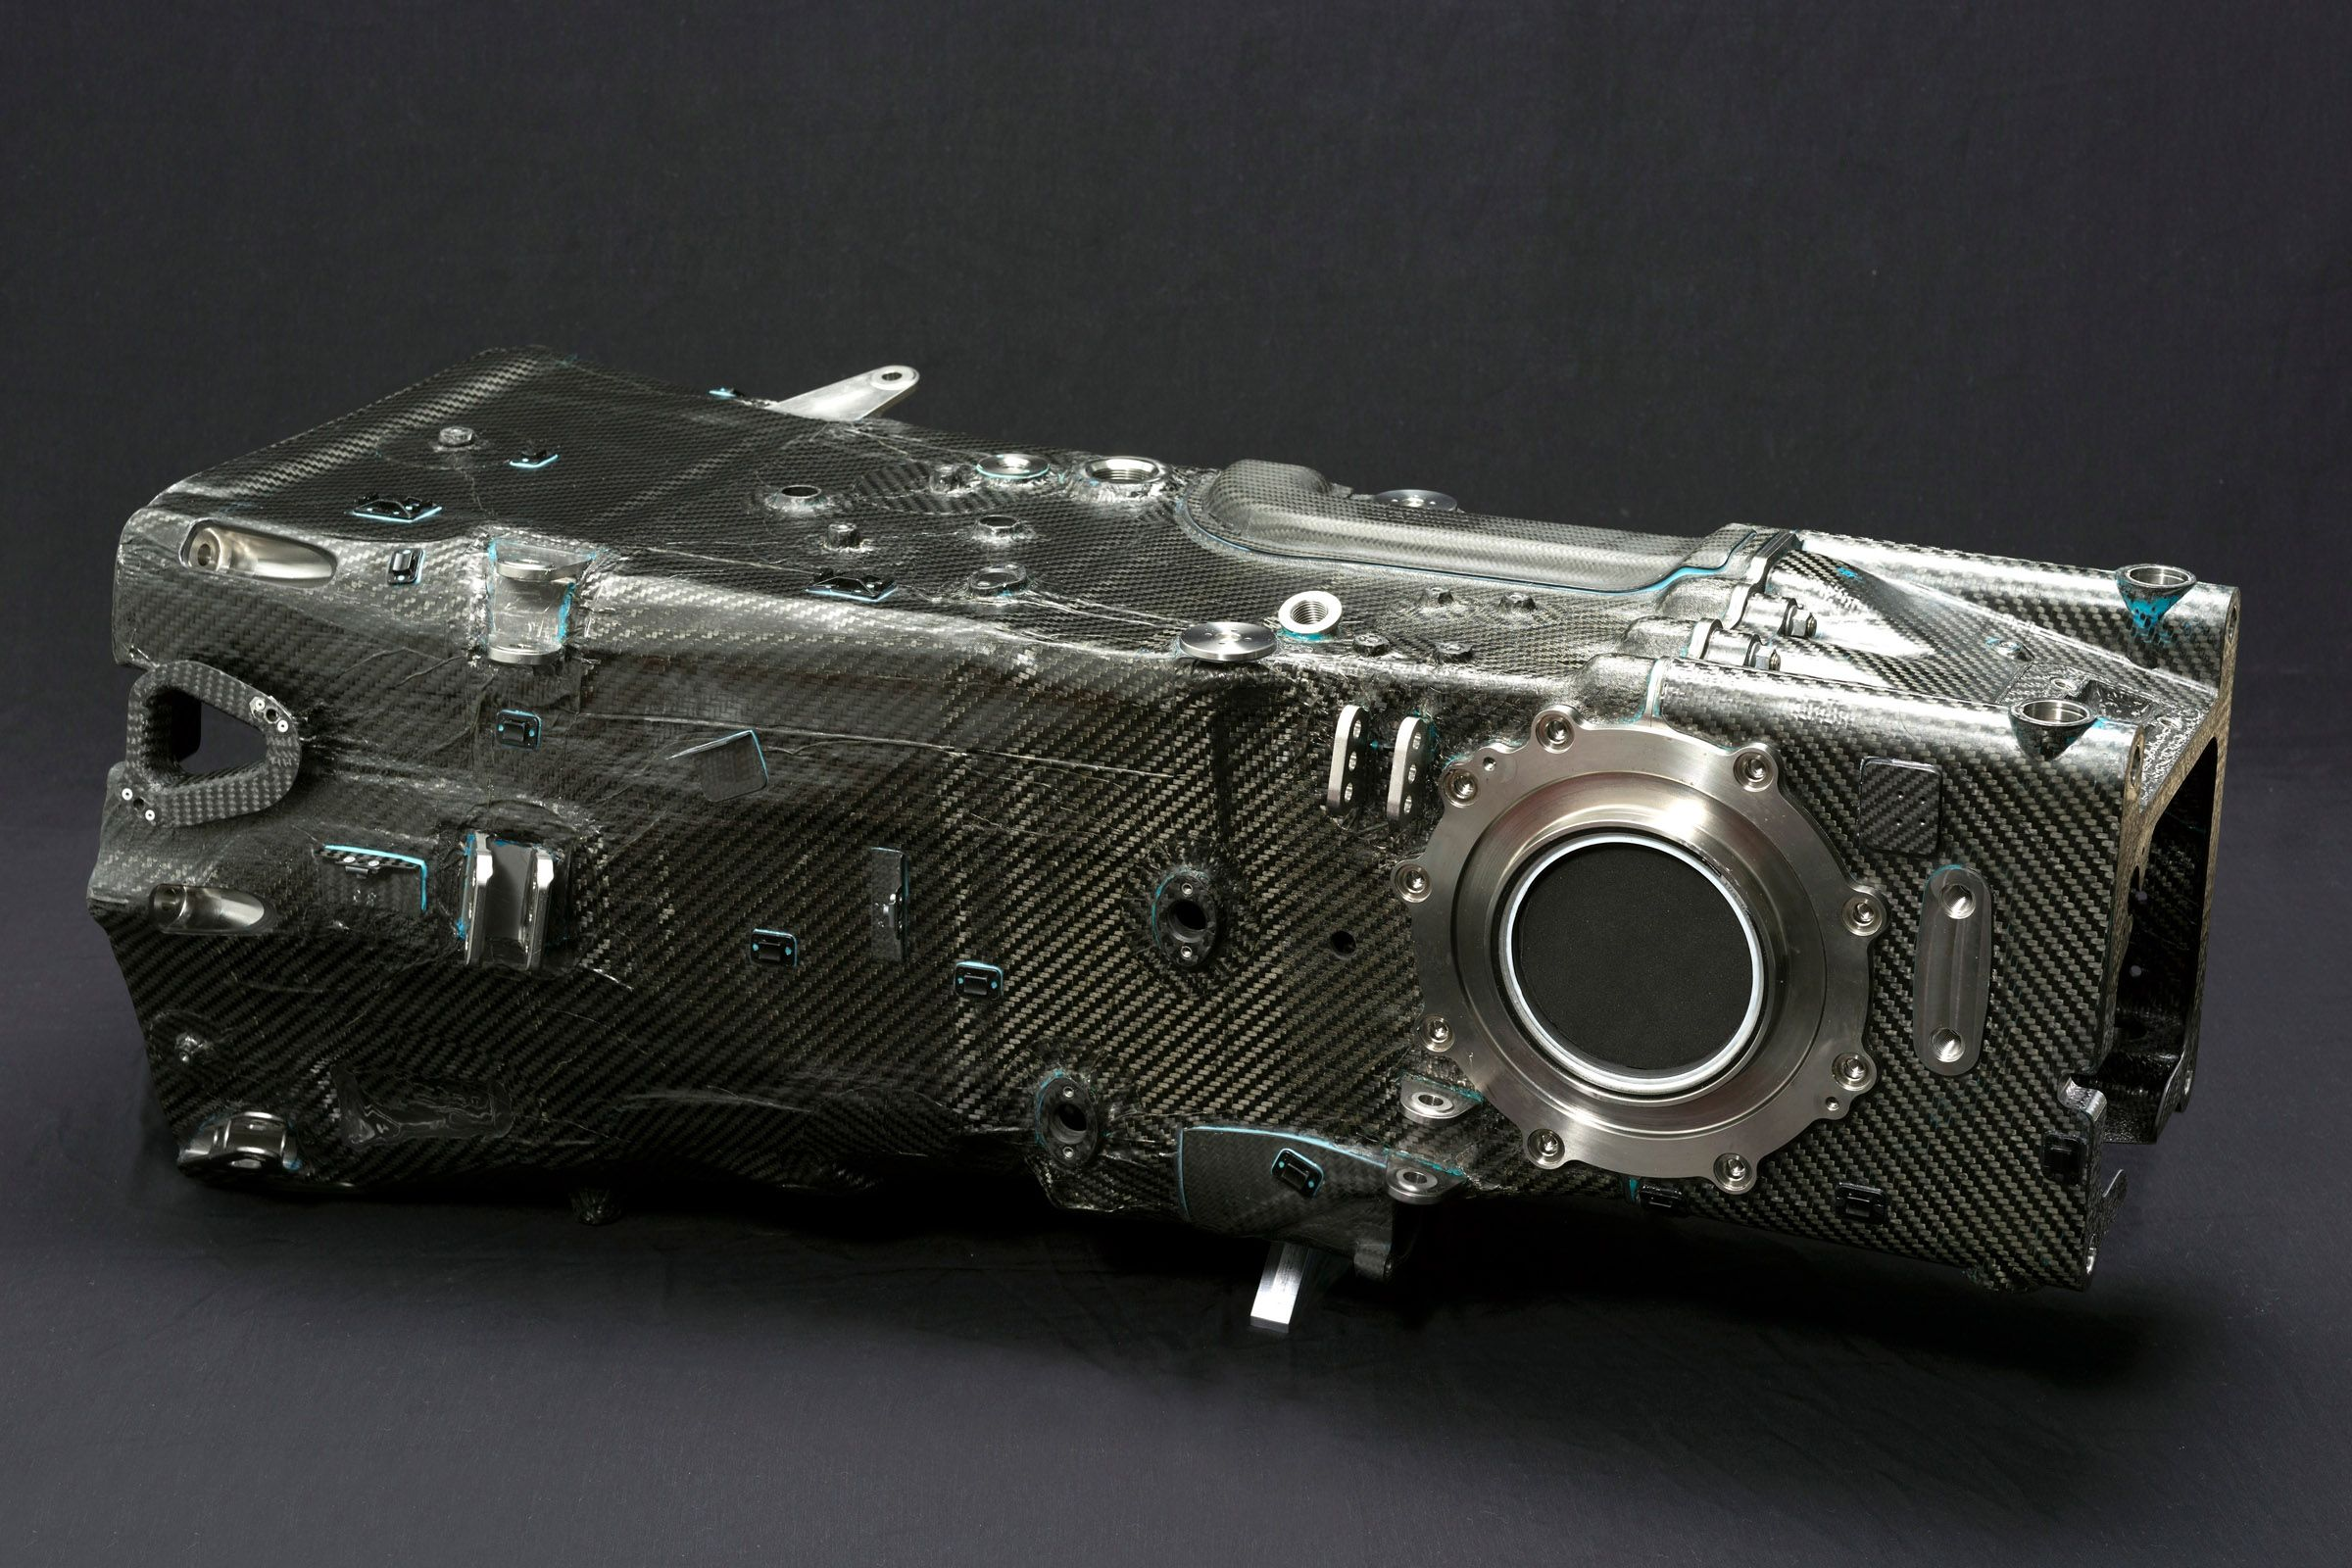 Carbon Fiber Transmission Housing Oh Those Shapes And